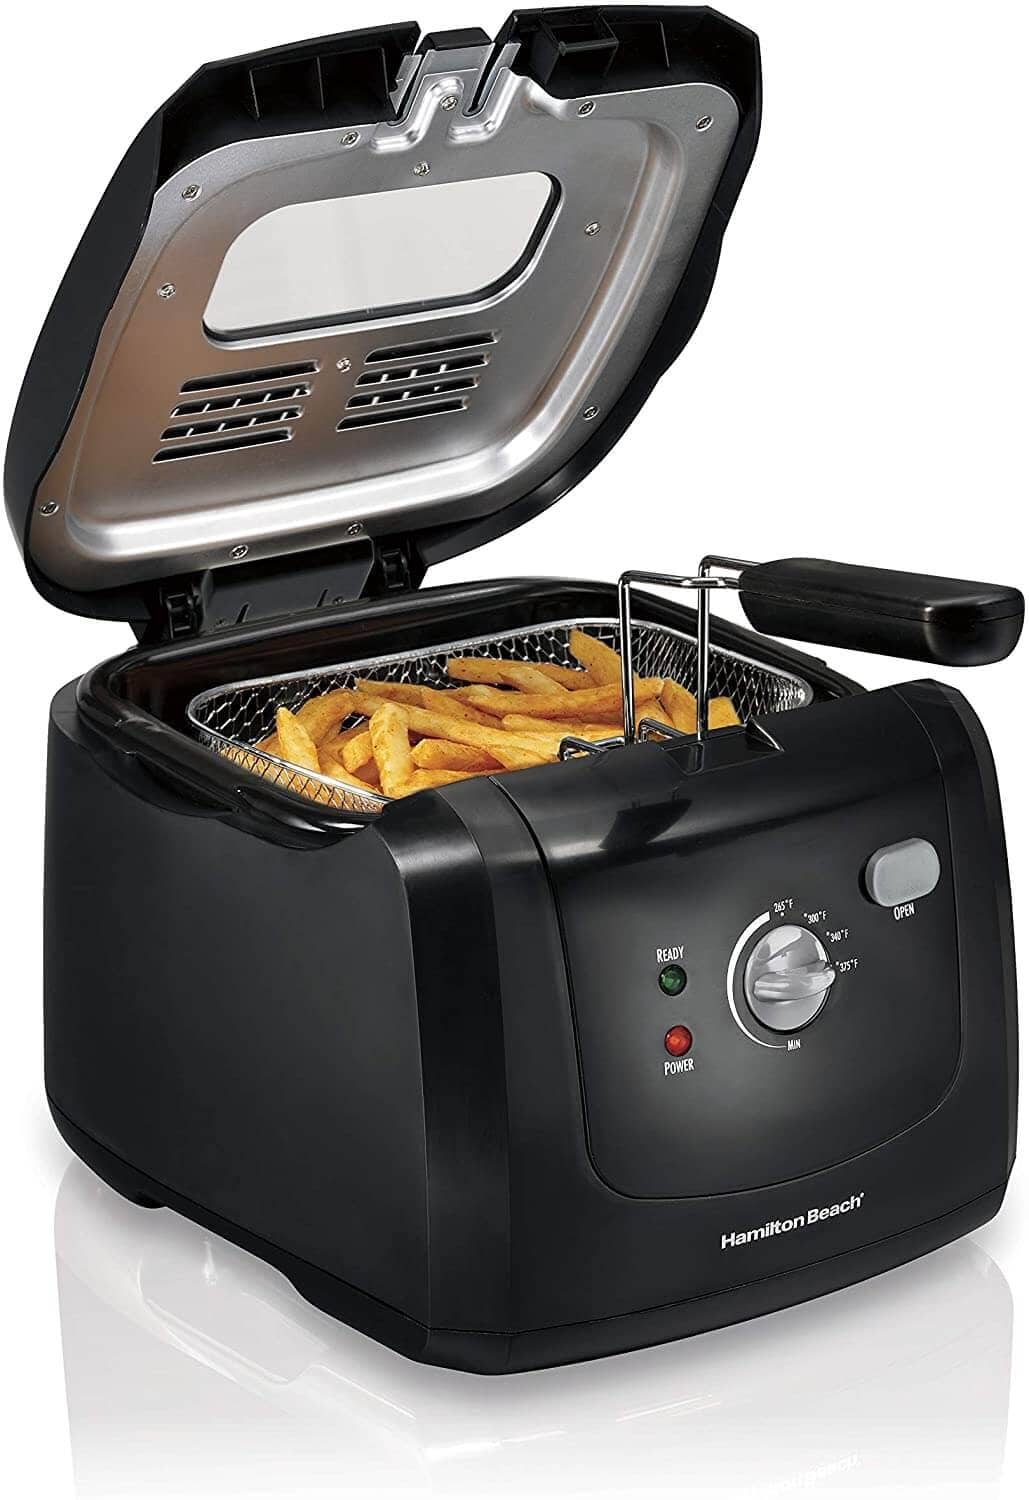 Hamilton Beach Cool-Touch Deep Fryer